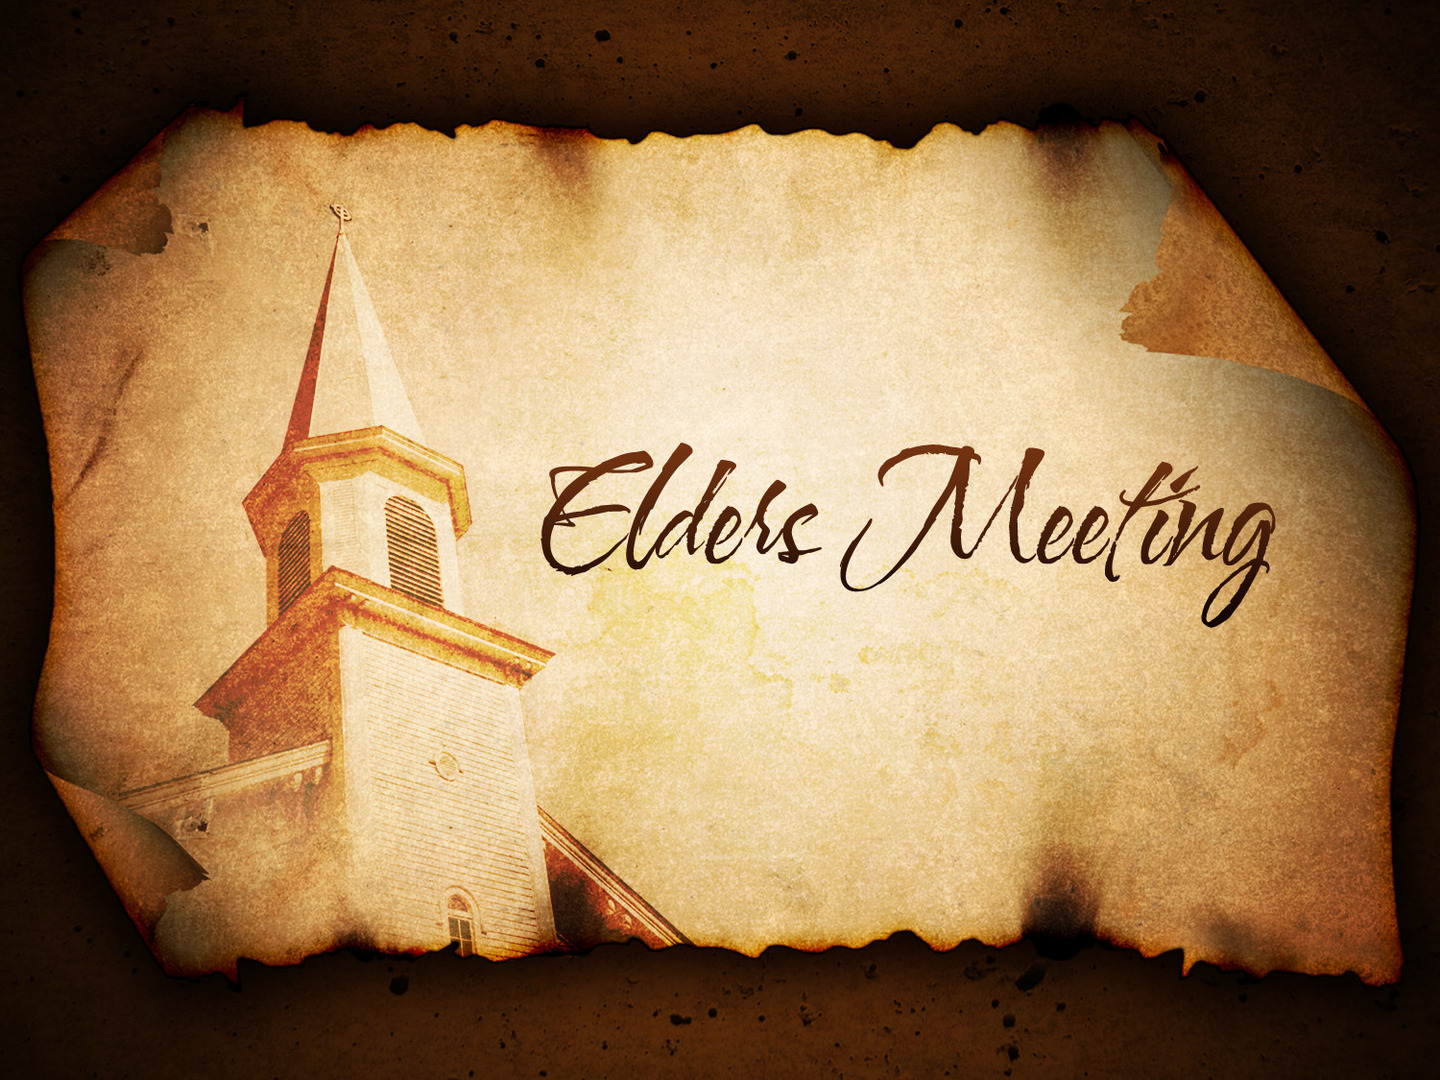 elders_meeting-title-2-still-4x3